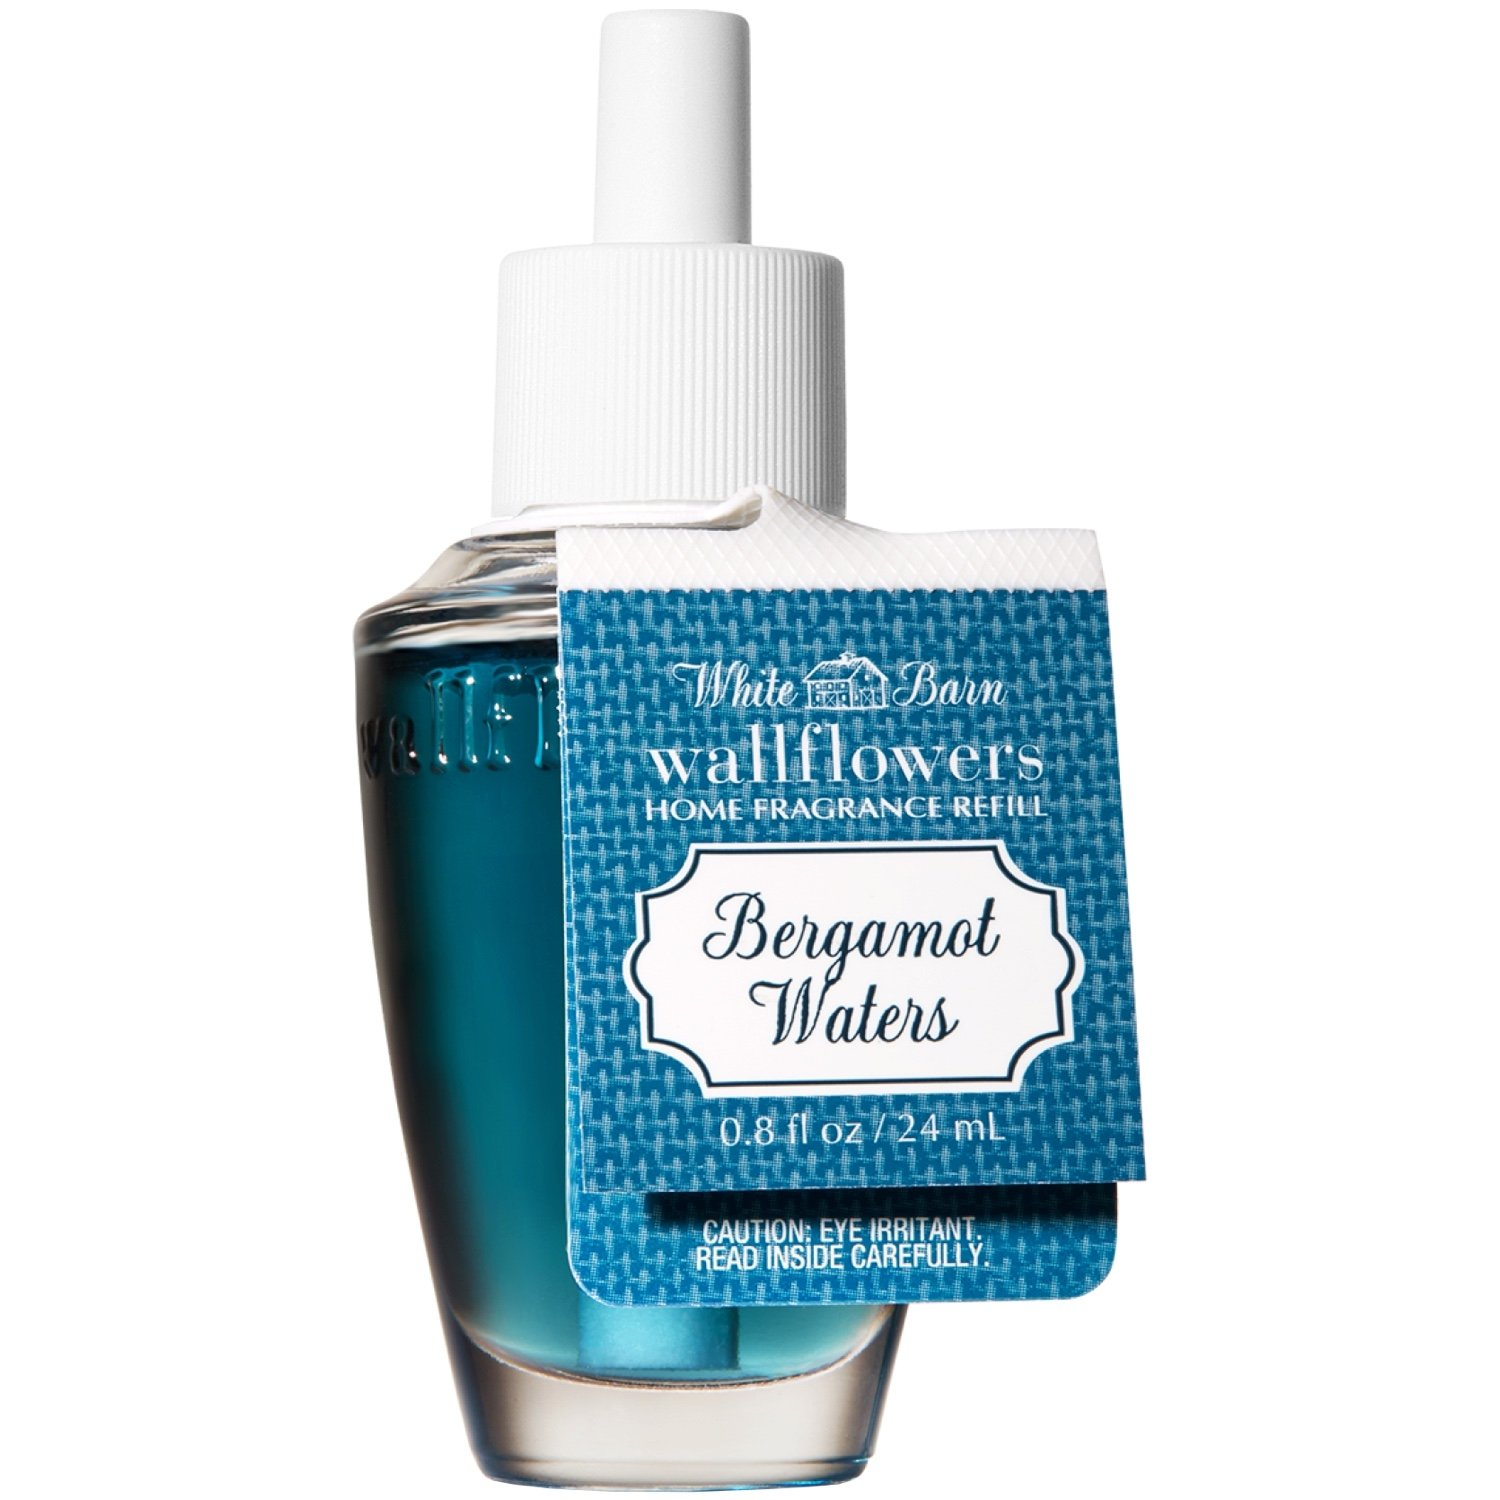 Bath and Body Works Wallflowers Refill NEW LOOK! (Bergamot Waters)